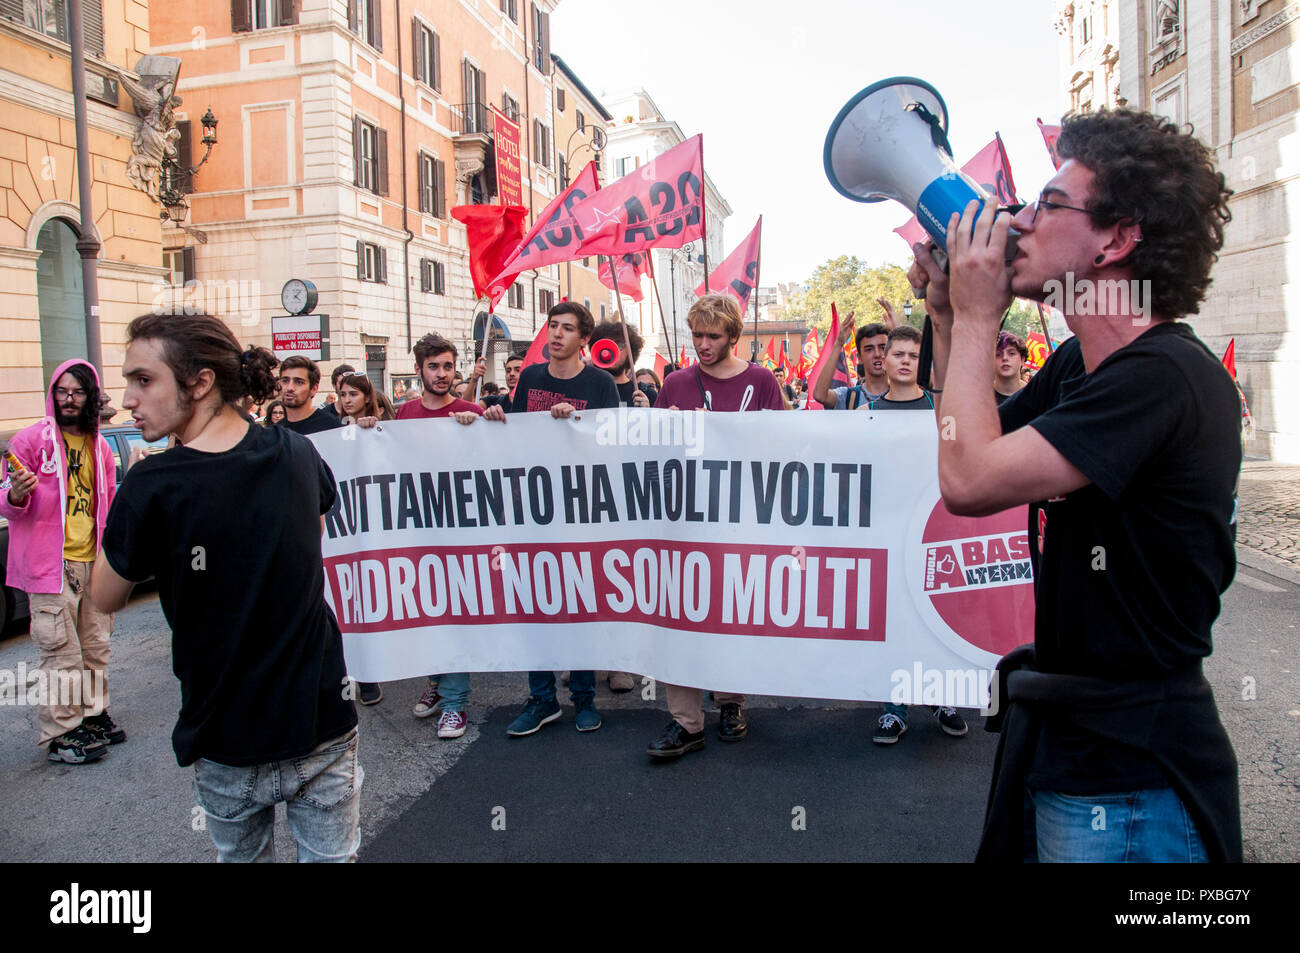 Rome, Italy. 20th Oct, 2018. Demonstration against privatization, for the nationalization of company services and strategic infrastructures in Italy Credit: Patrizia Cortellessa/Pacific Press/Alamy Live News Stock Photo